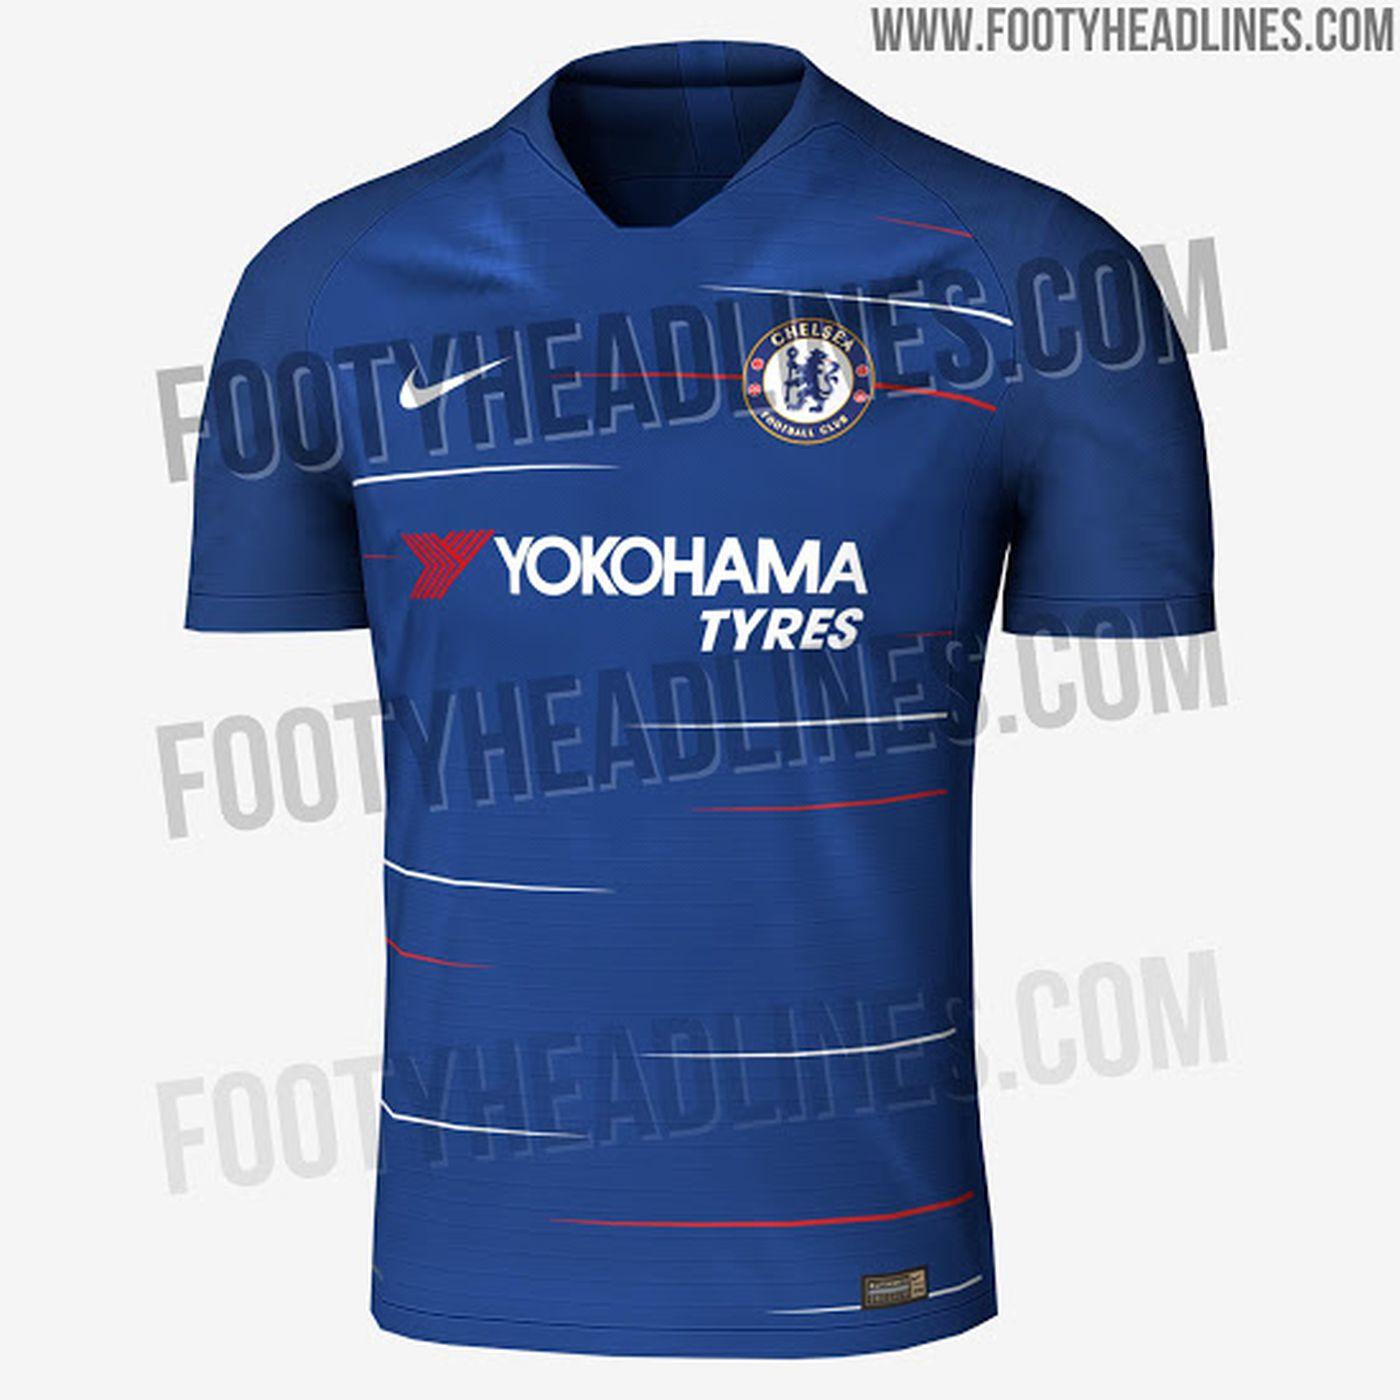 cc8543a81 Chelsea 2018-19 home and away shirts leaked